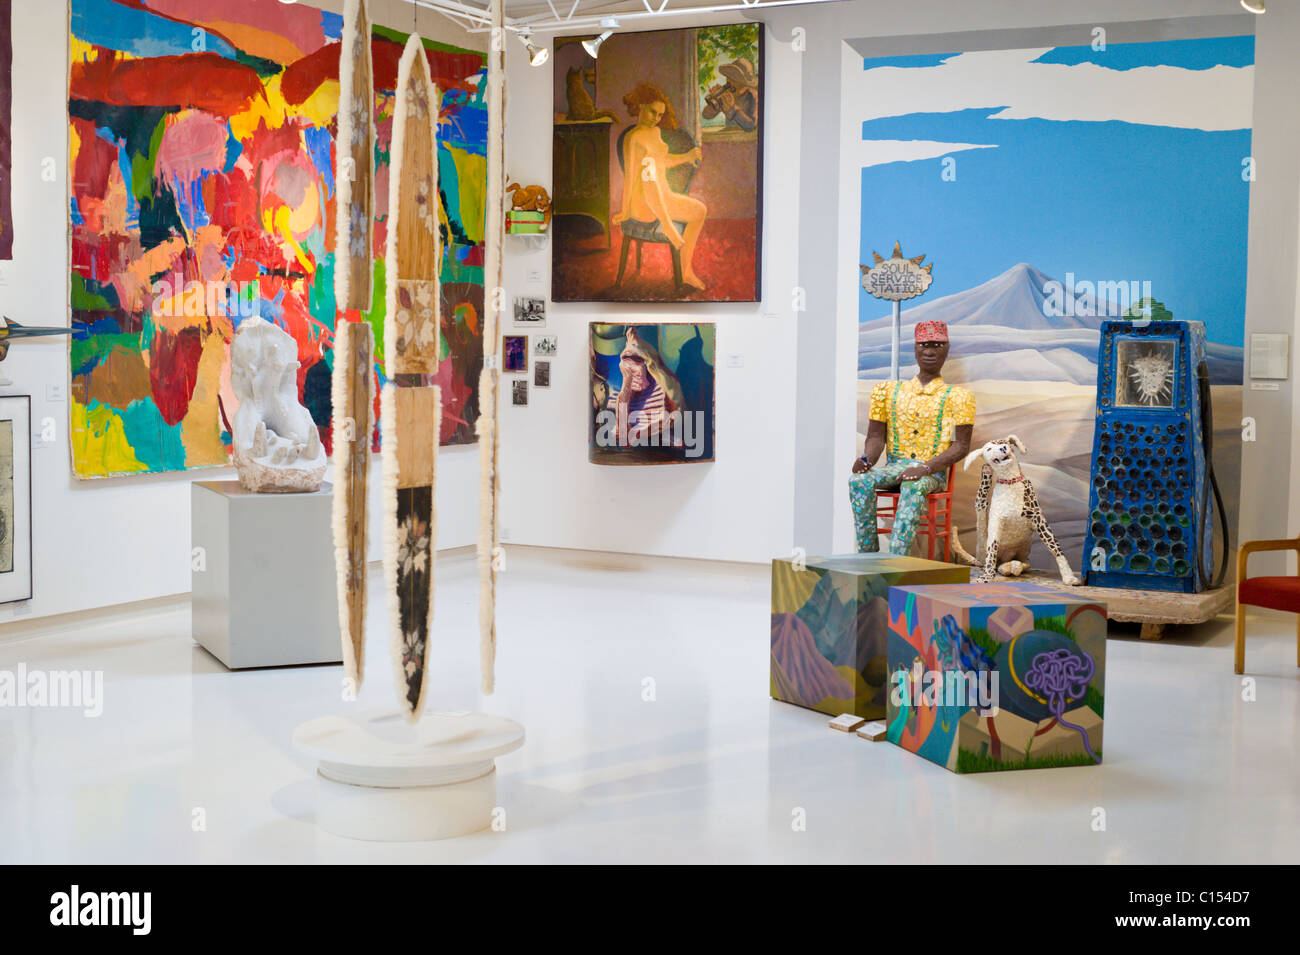 Interior view - Anderson Museum of Contemporary Art in Roswell, New Mexico. - Stock Image